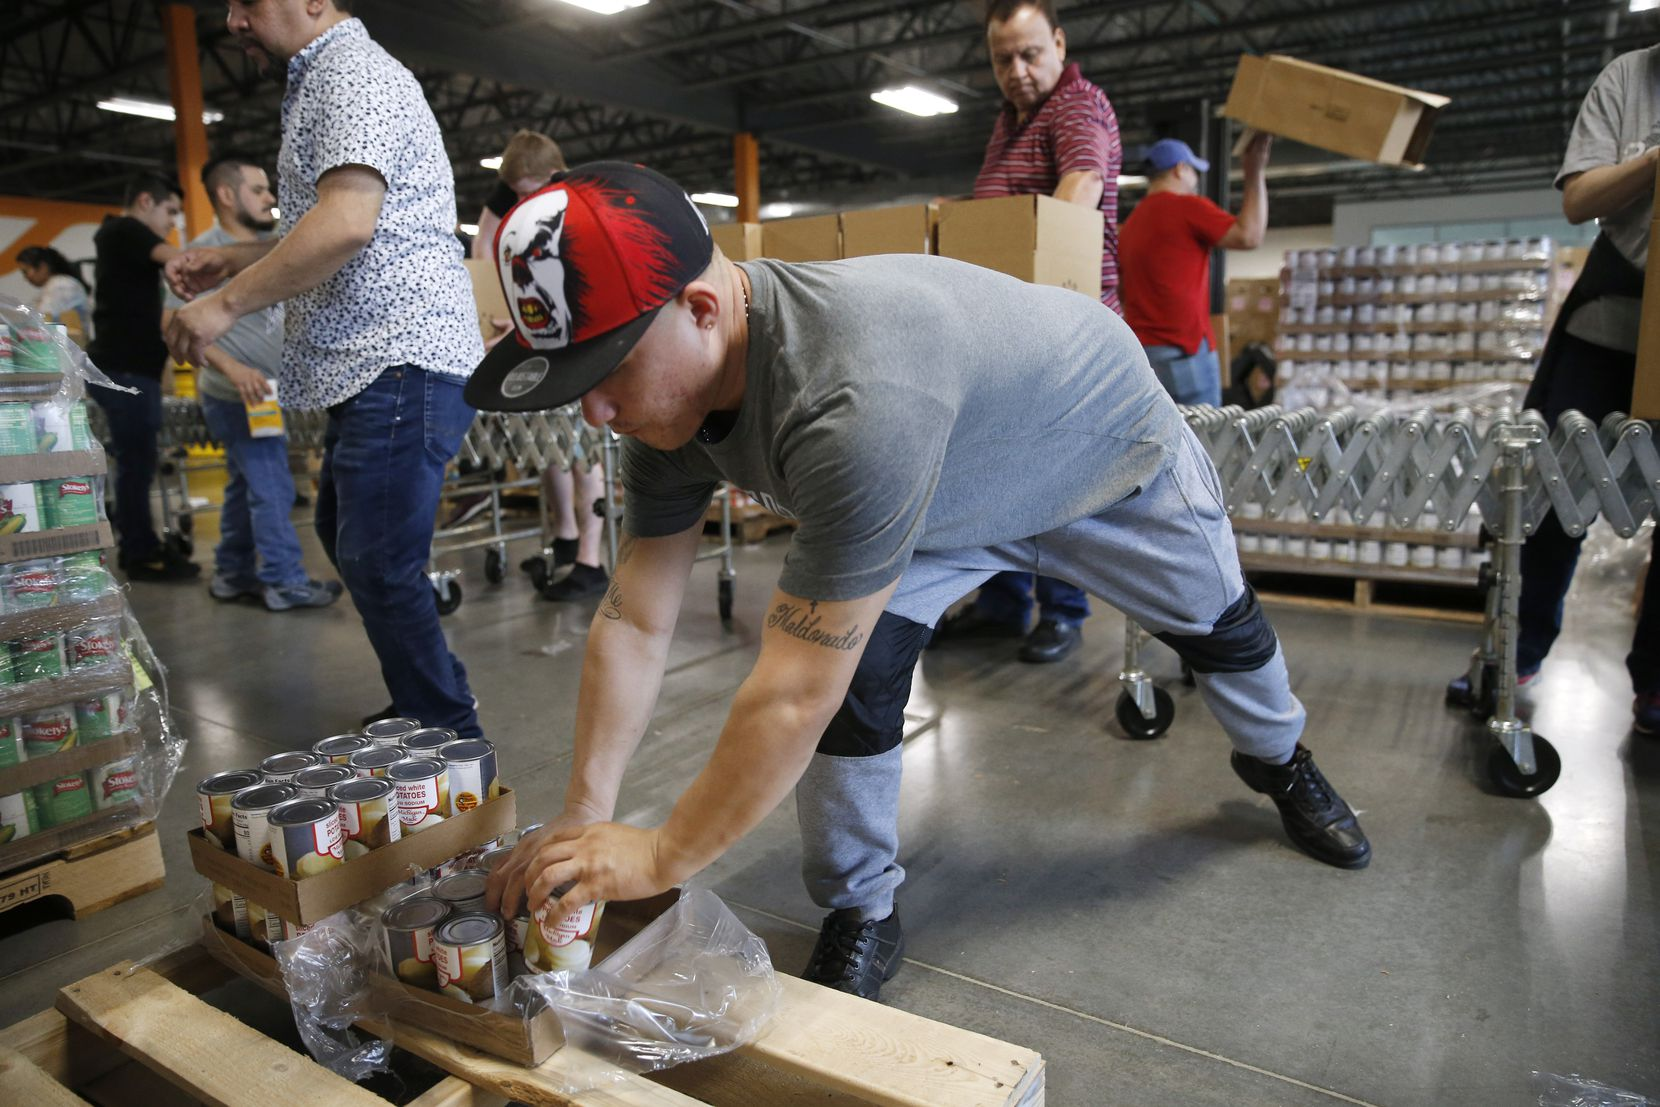 Fredy Maldonado of Dallas works on putting together boxes for distribution at North Texas Food Bank in Plano. The North Texas Food Bank is replacing volunteers with employees in the hospitality industry who have been affected by the restaurant closures due to the coronavirus.